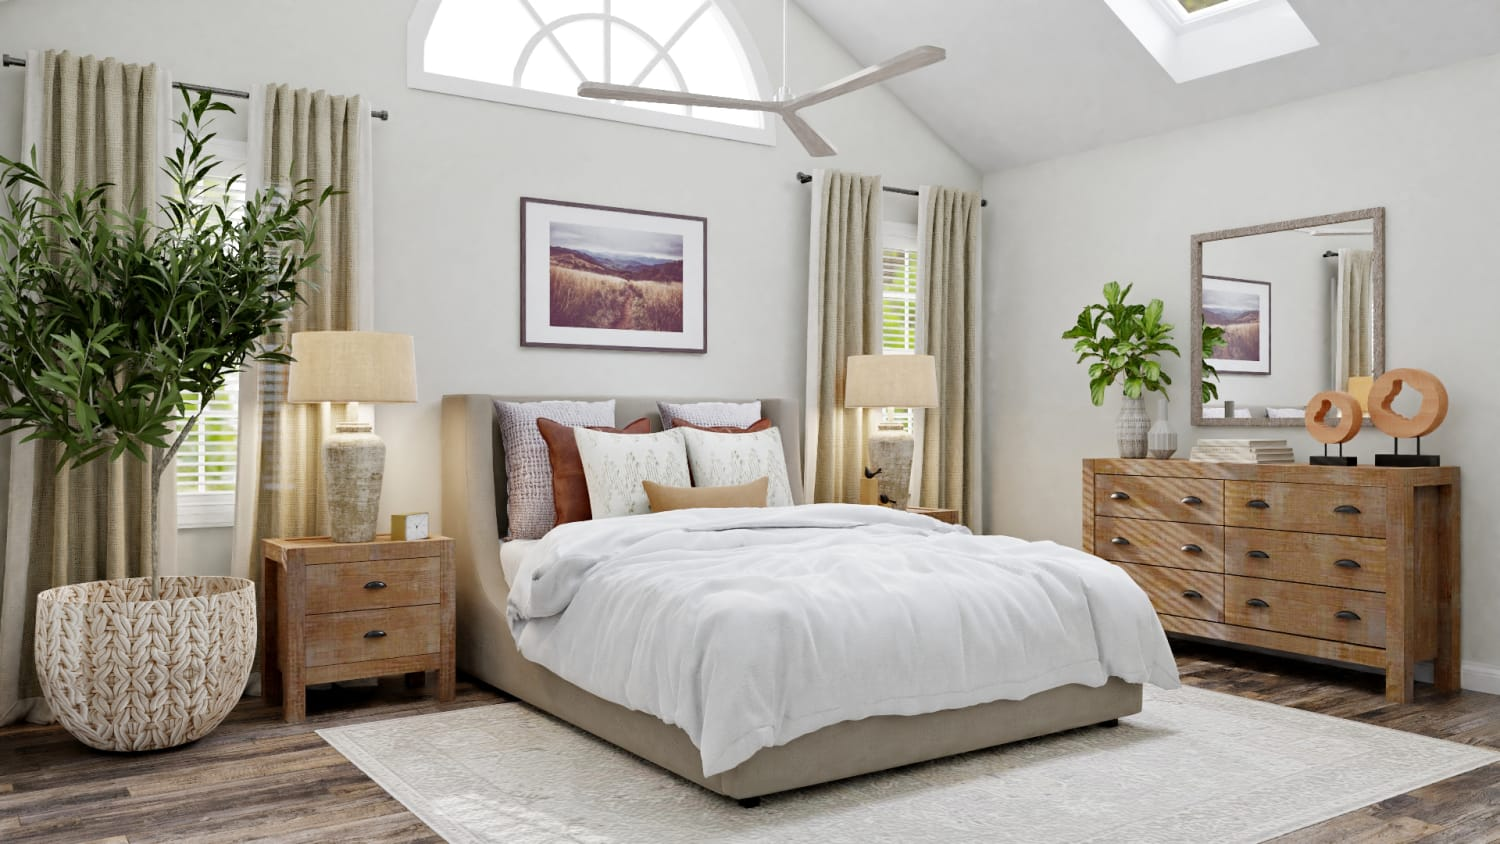 A Modern Transitional Bedroom Design with Nature Touches Design By Spacejoy